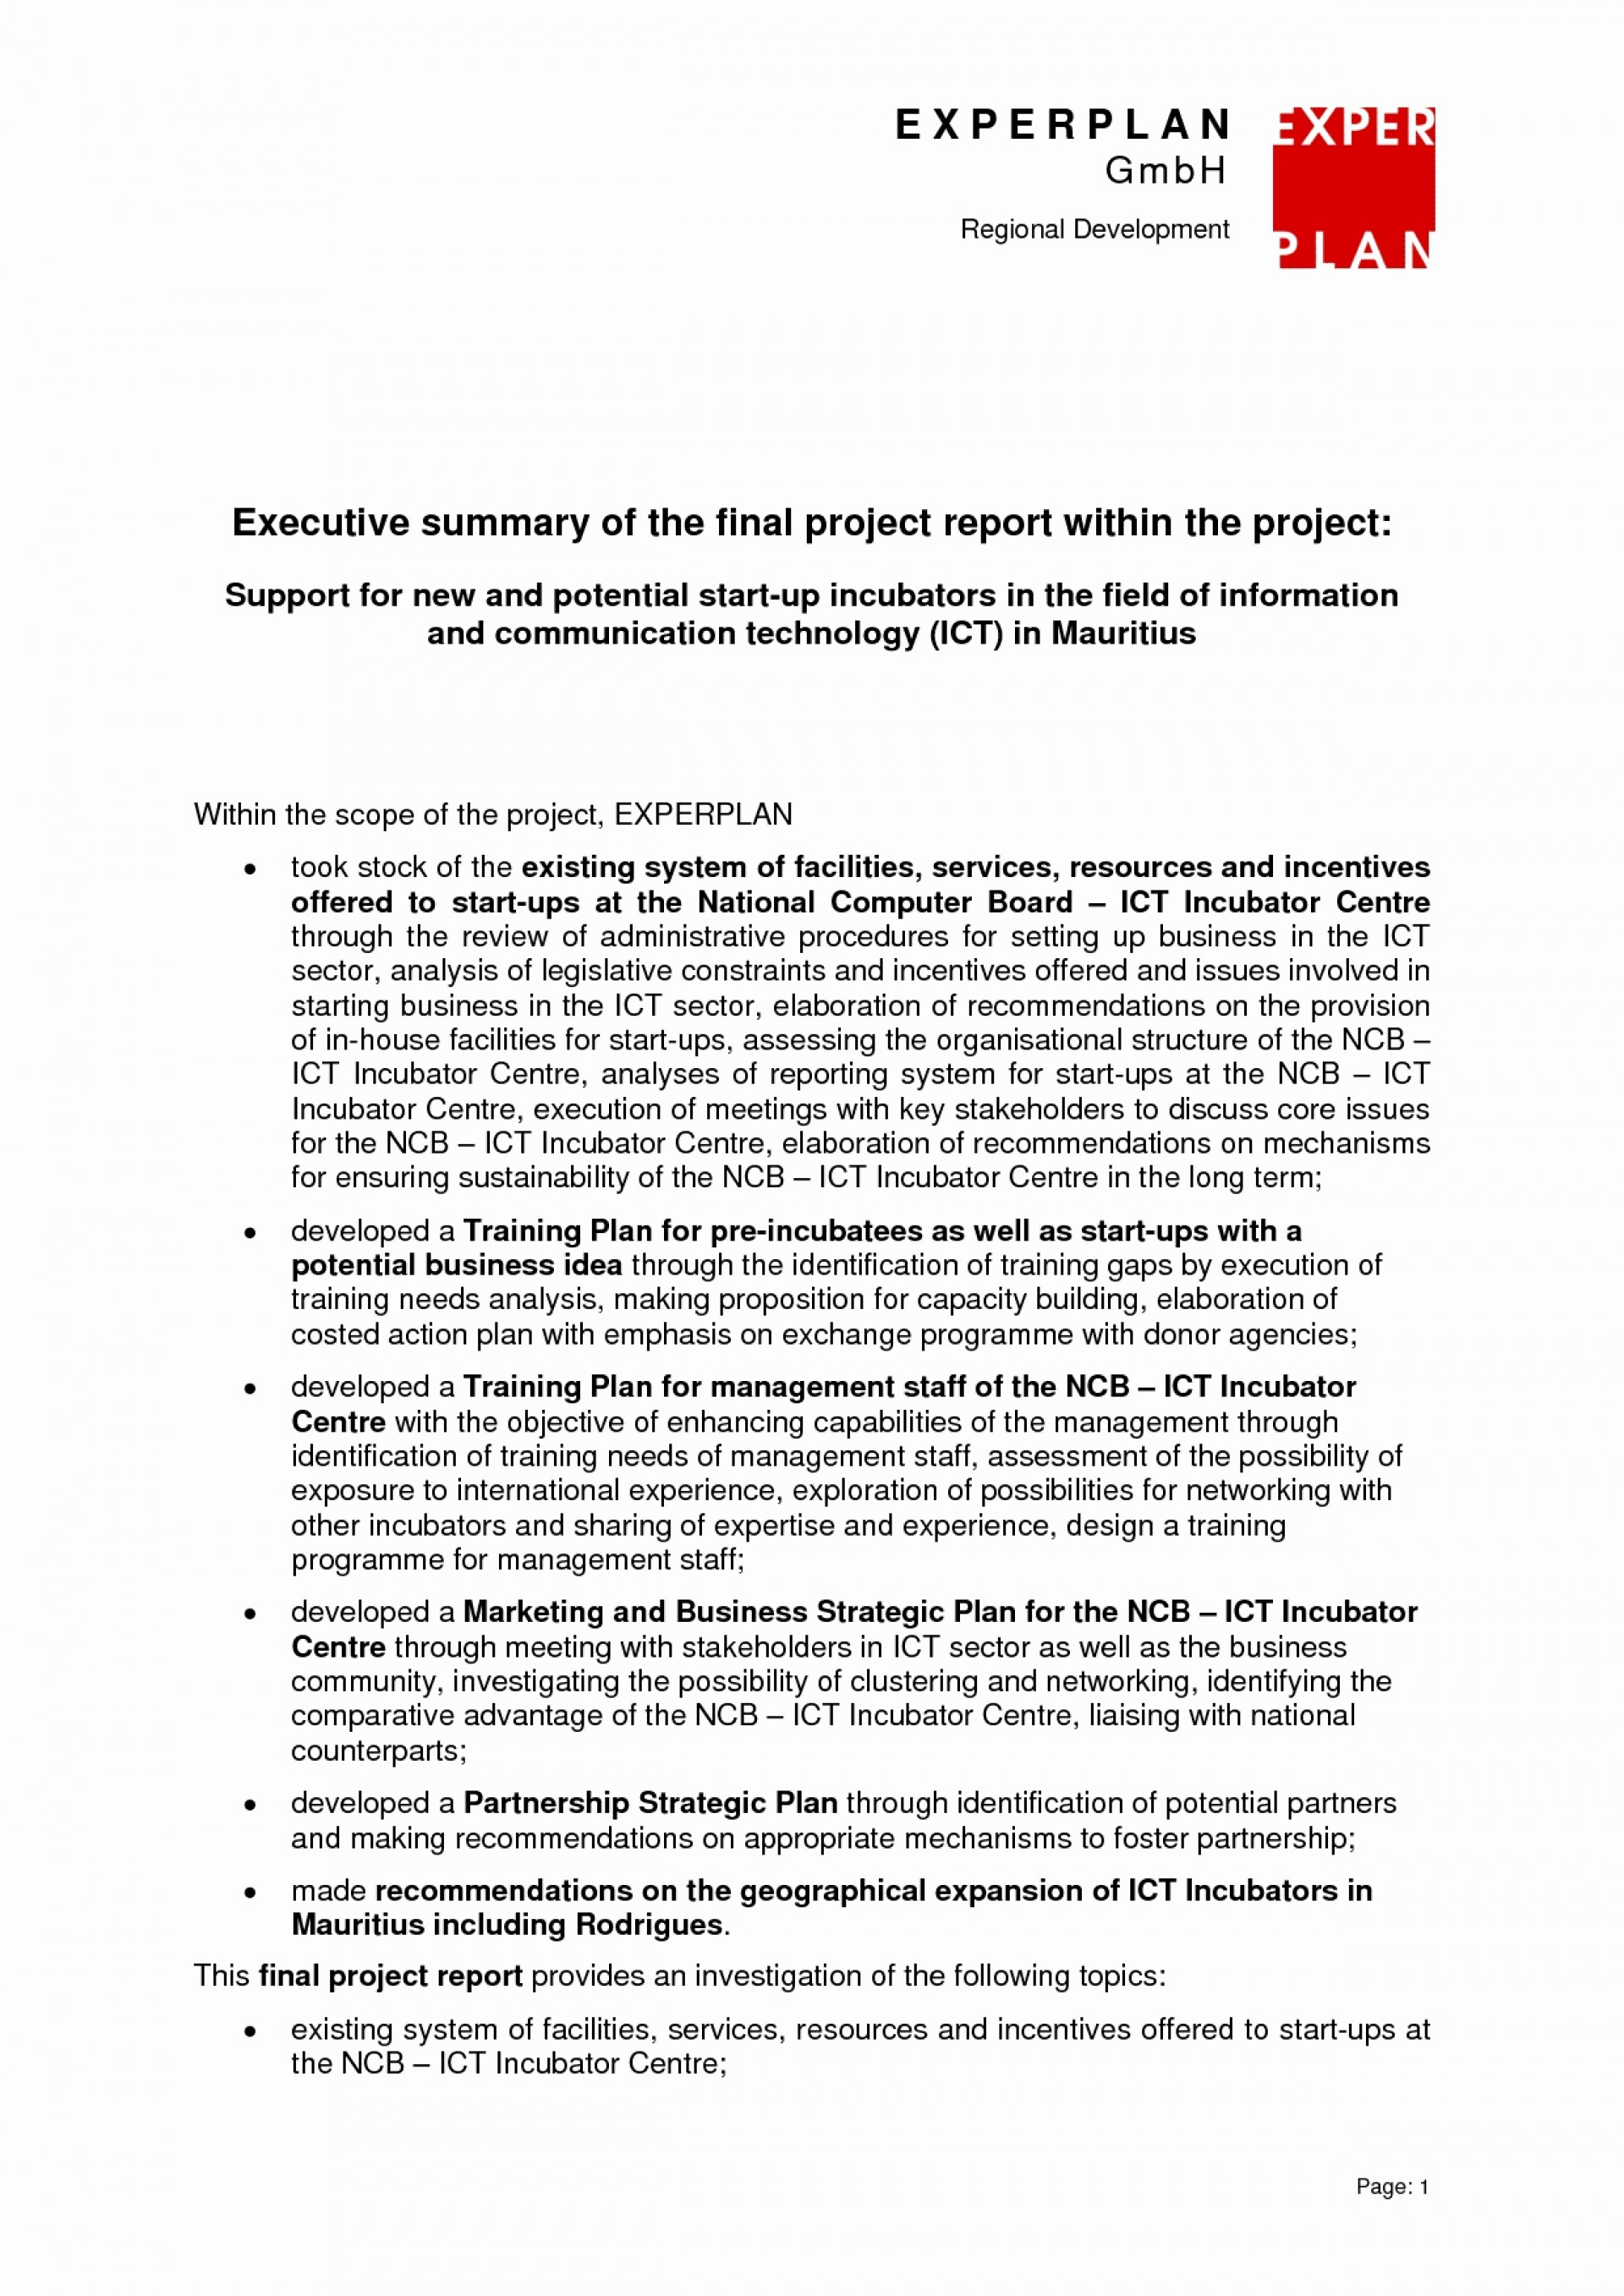 009 Research Paper Ideas Of Executive Summary Sample Pdf